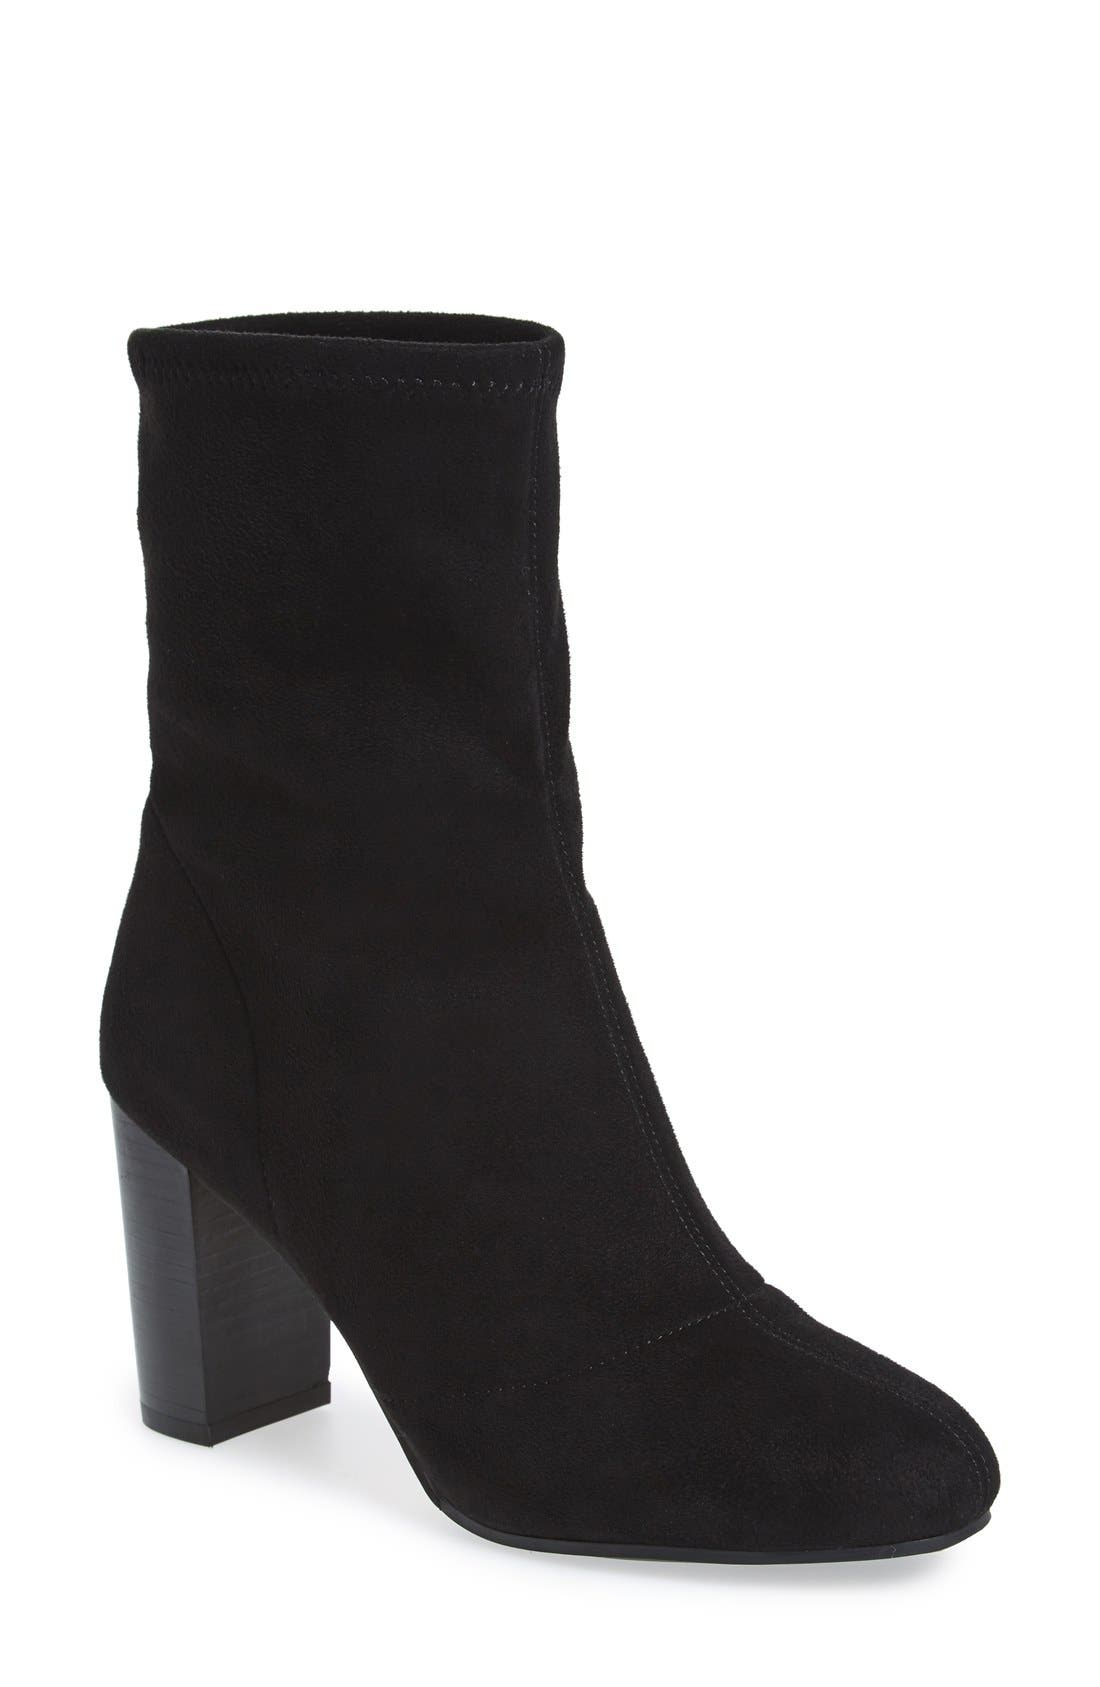 Main Image - Vince Camuto 'Sendra' Bootie (Women)